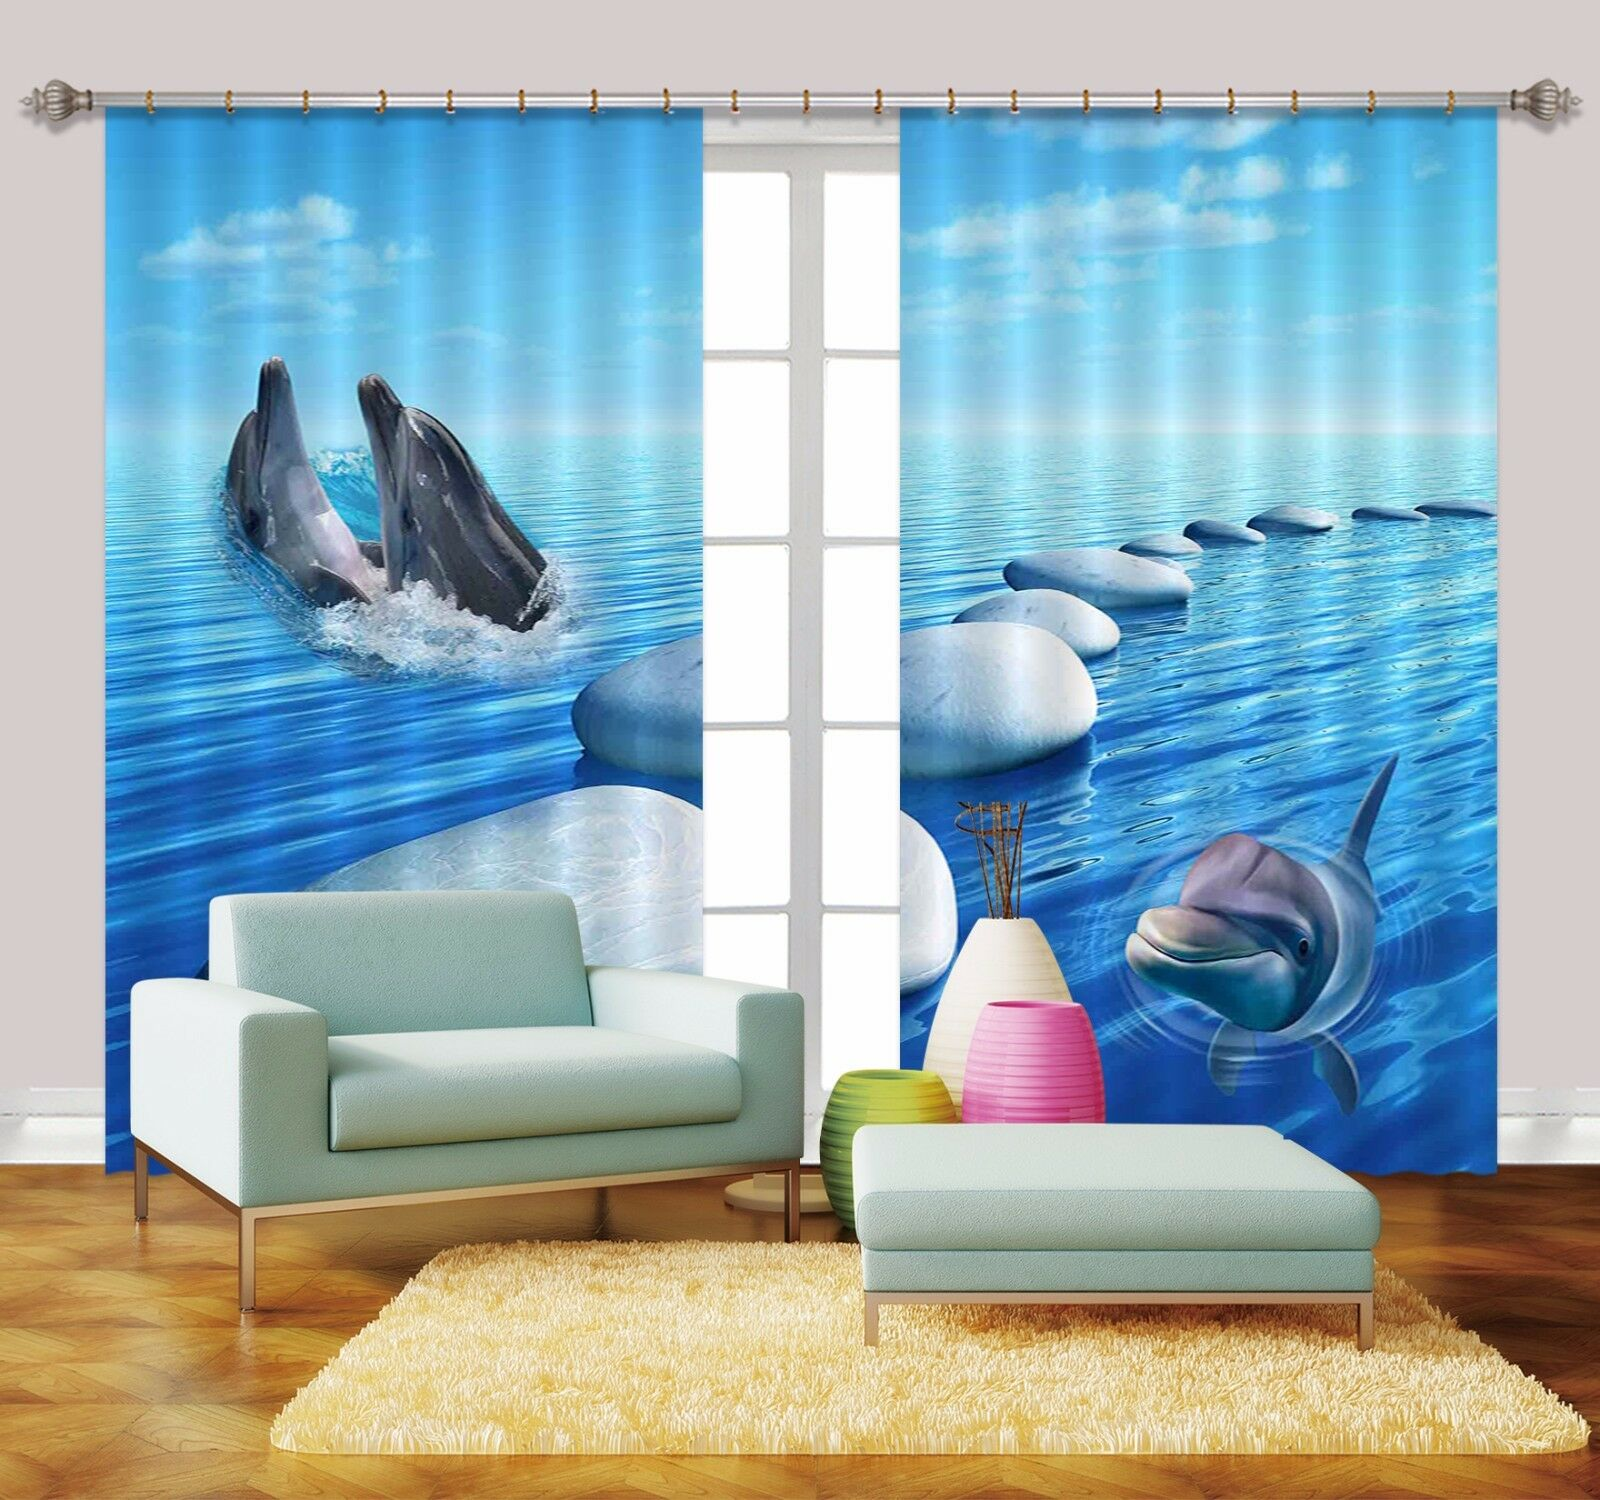 3D Dolphin Bule 773 Blockout Photo Print Curtains Drapes Fabric Window Carly